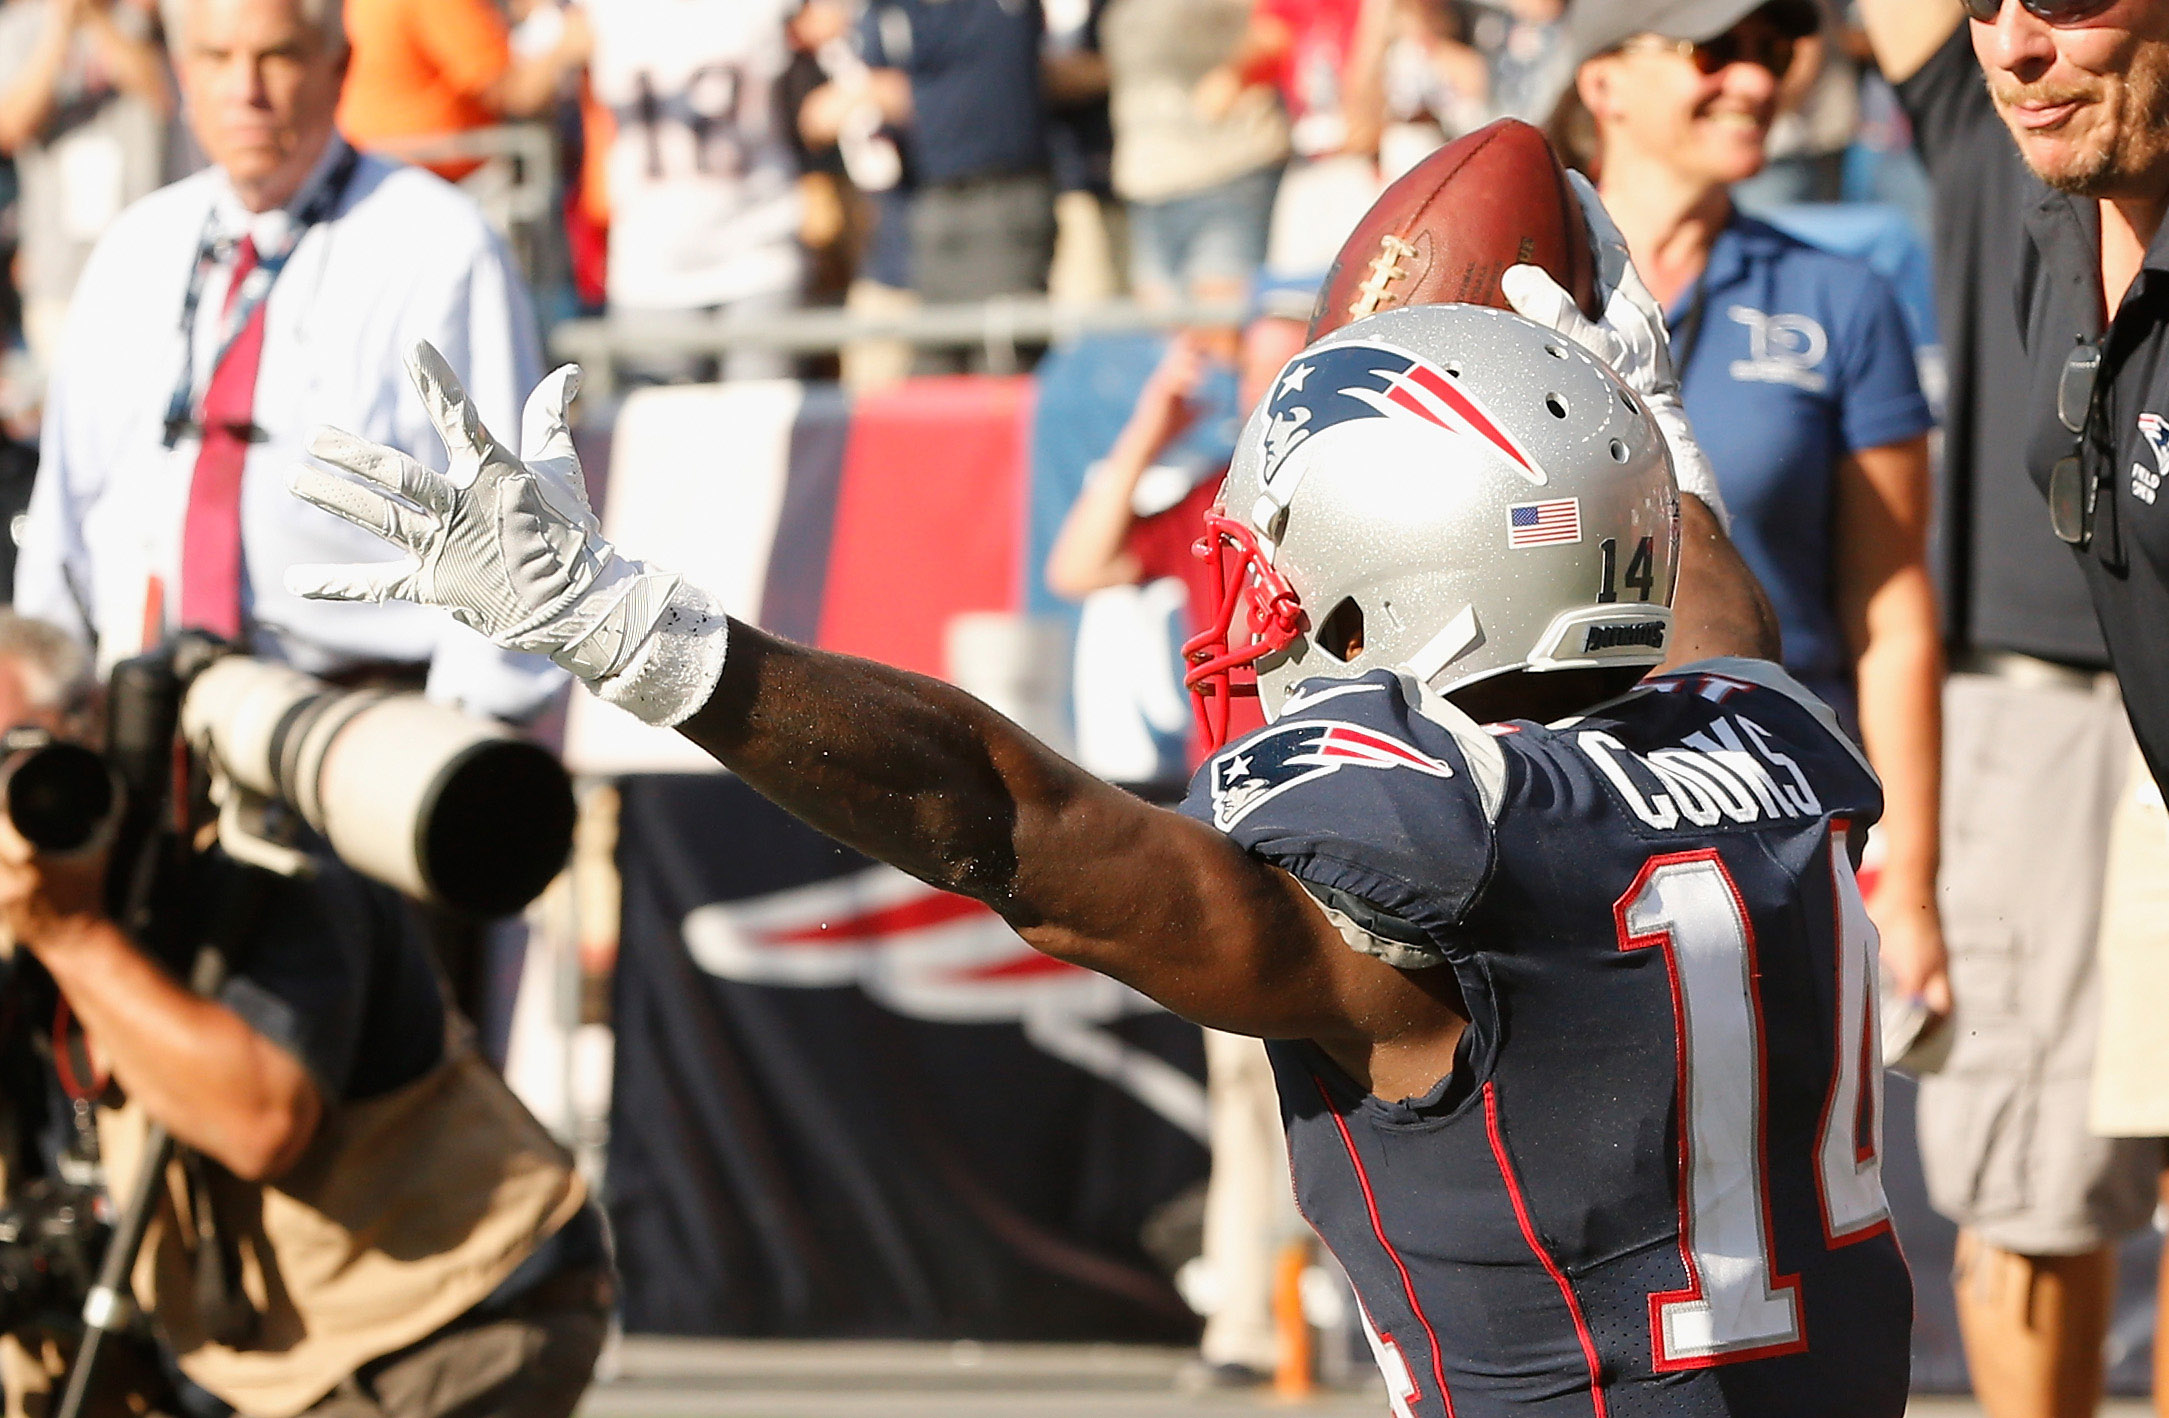 Patriots vs. Buccaneers: Highlights, game tracker and more